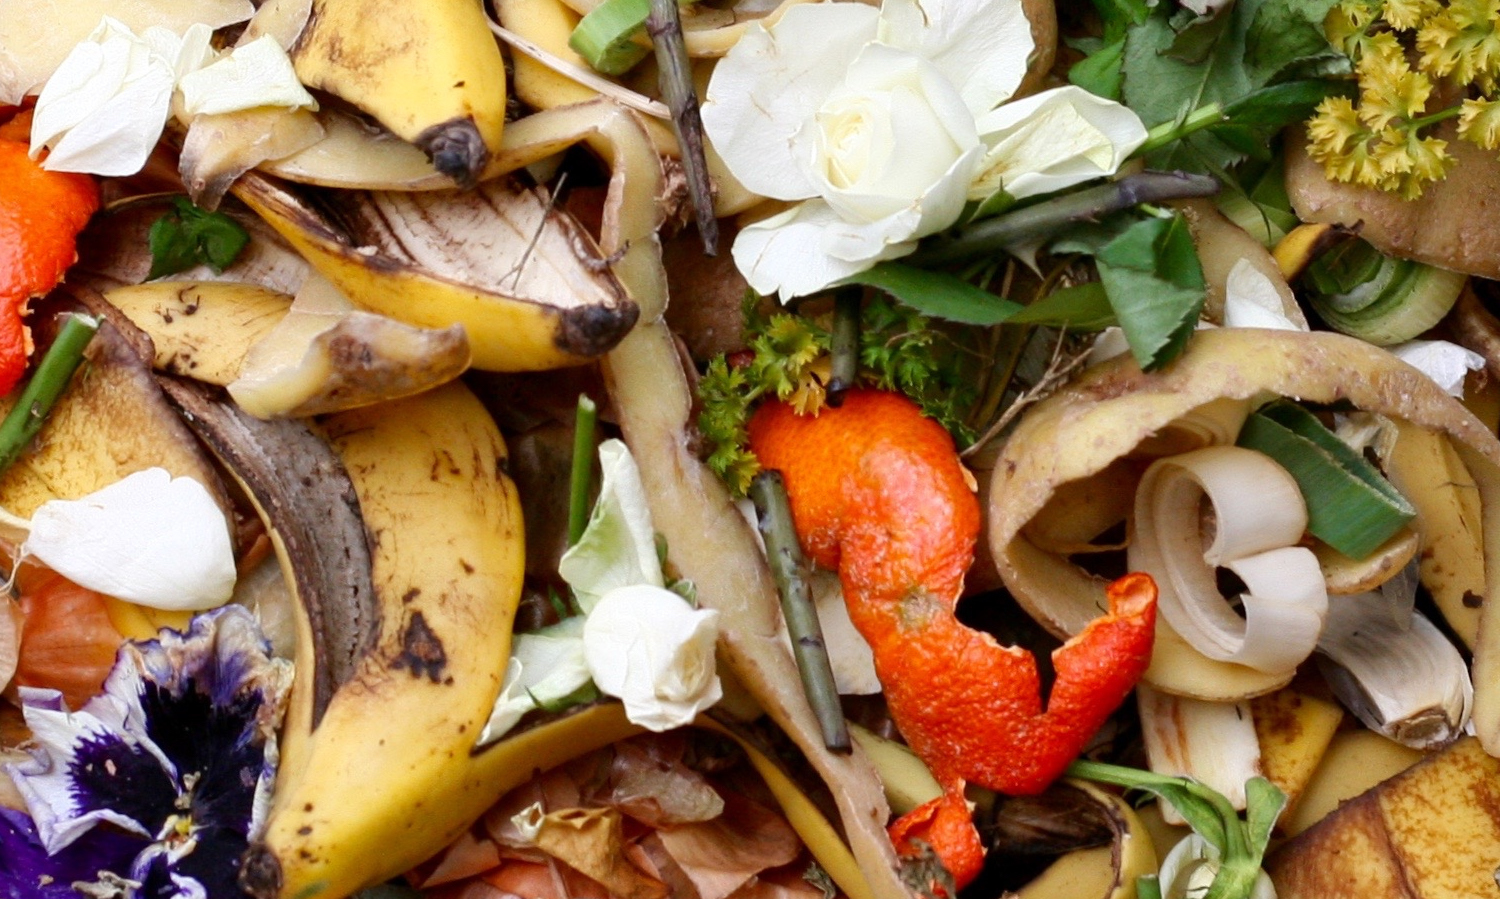 12 Organizations Creating Food Products From Upcycled Food Waste